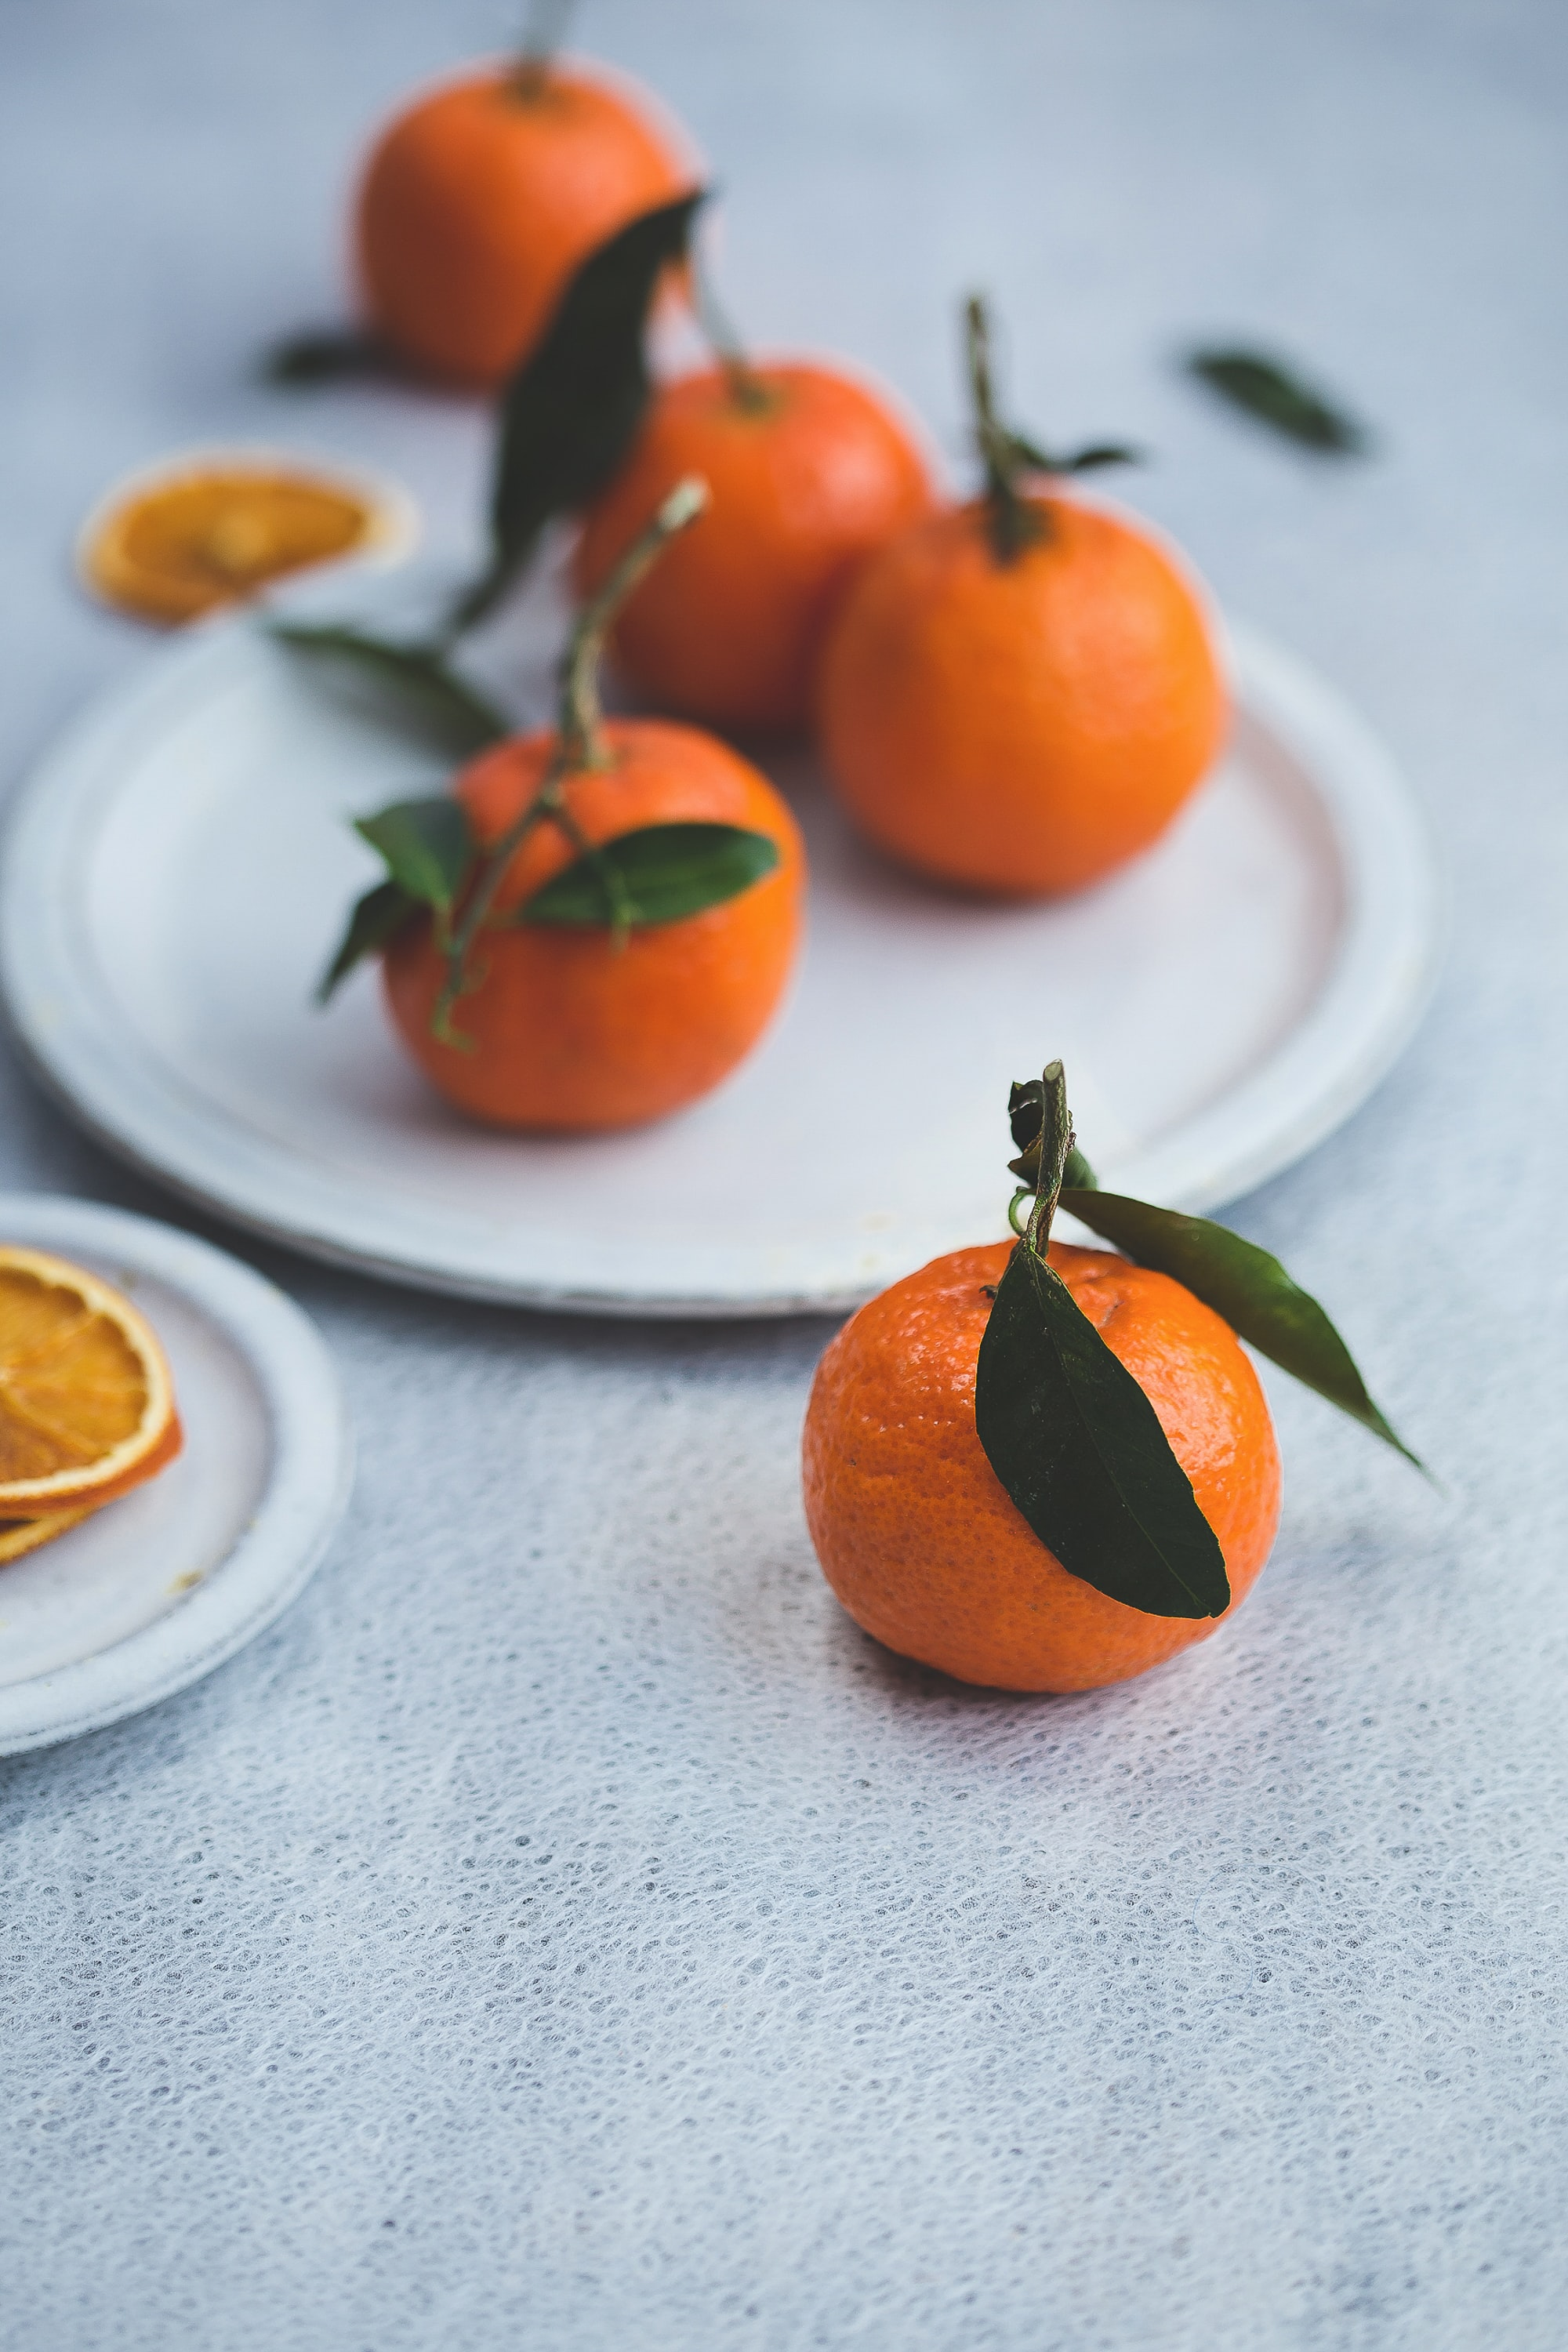 orange fruits on white plate